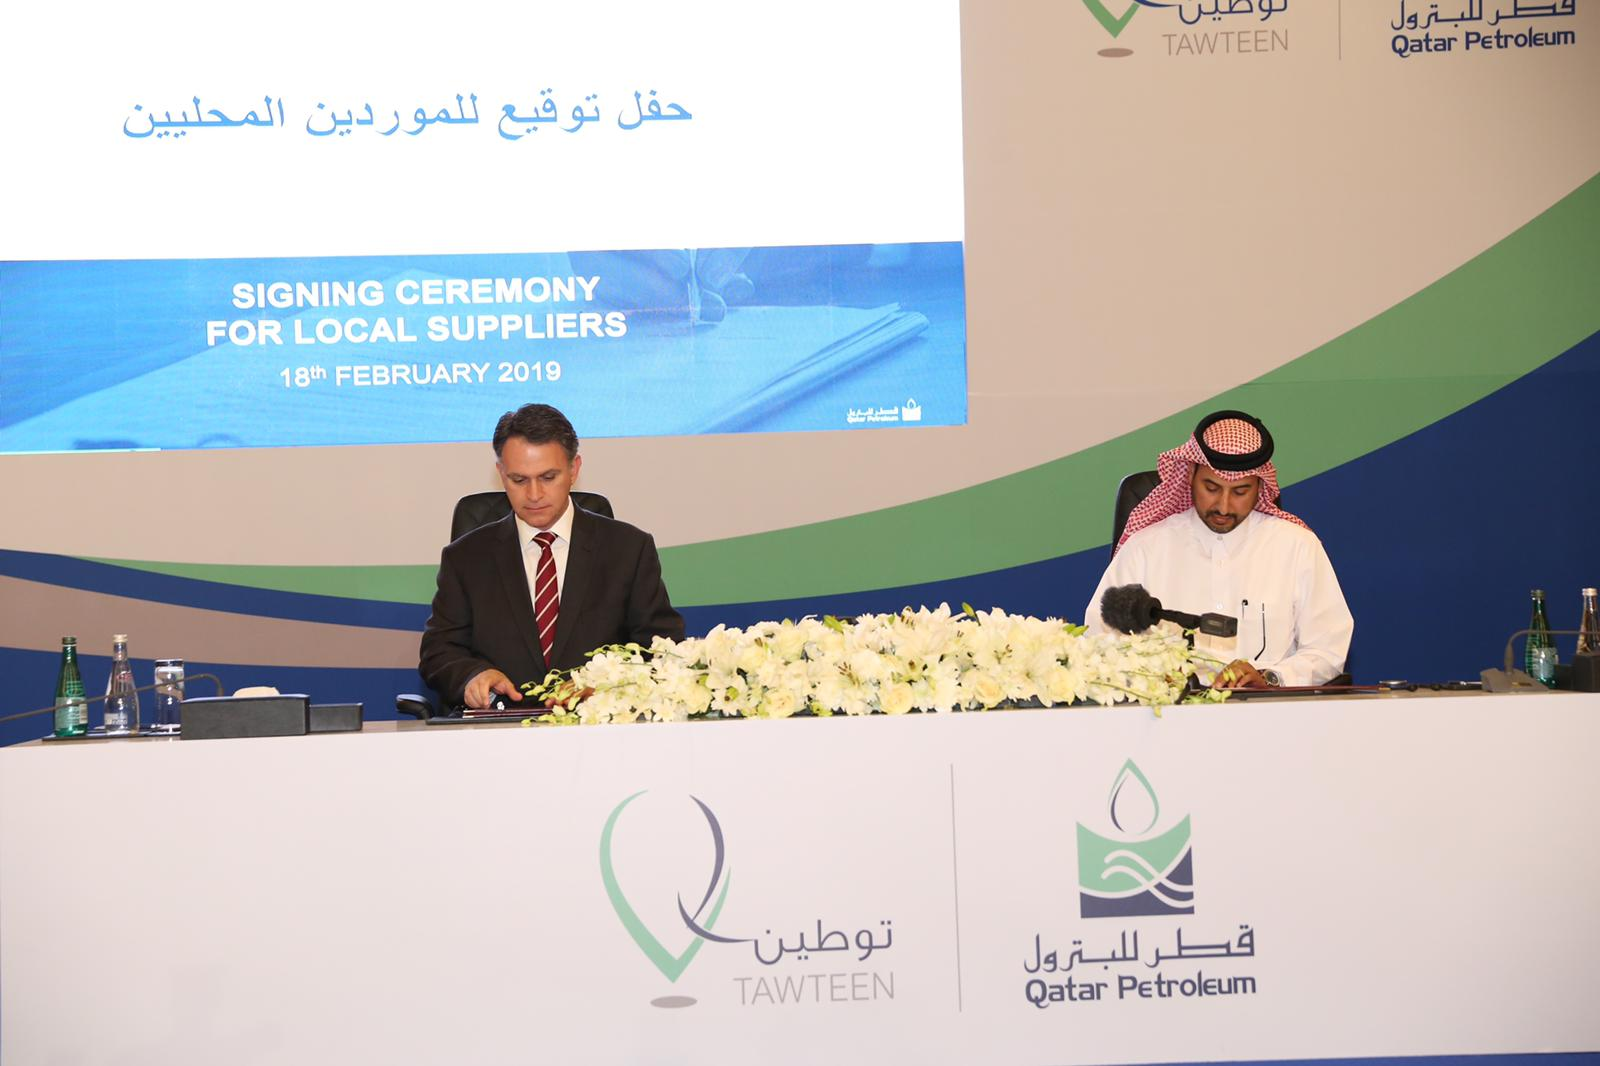 Al Khalij Cement Company and Qatar Petroleum sign agreement for the supply of oil well cement